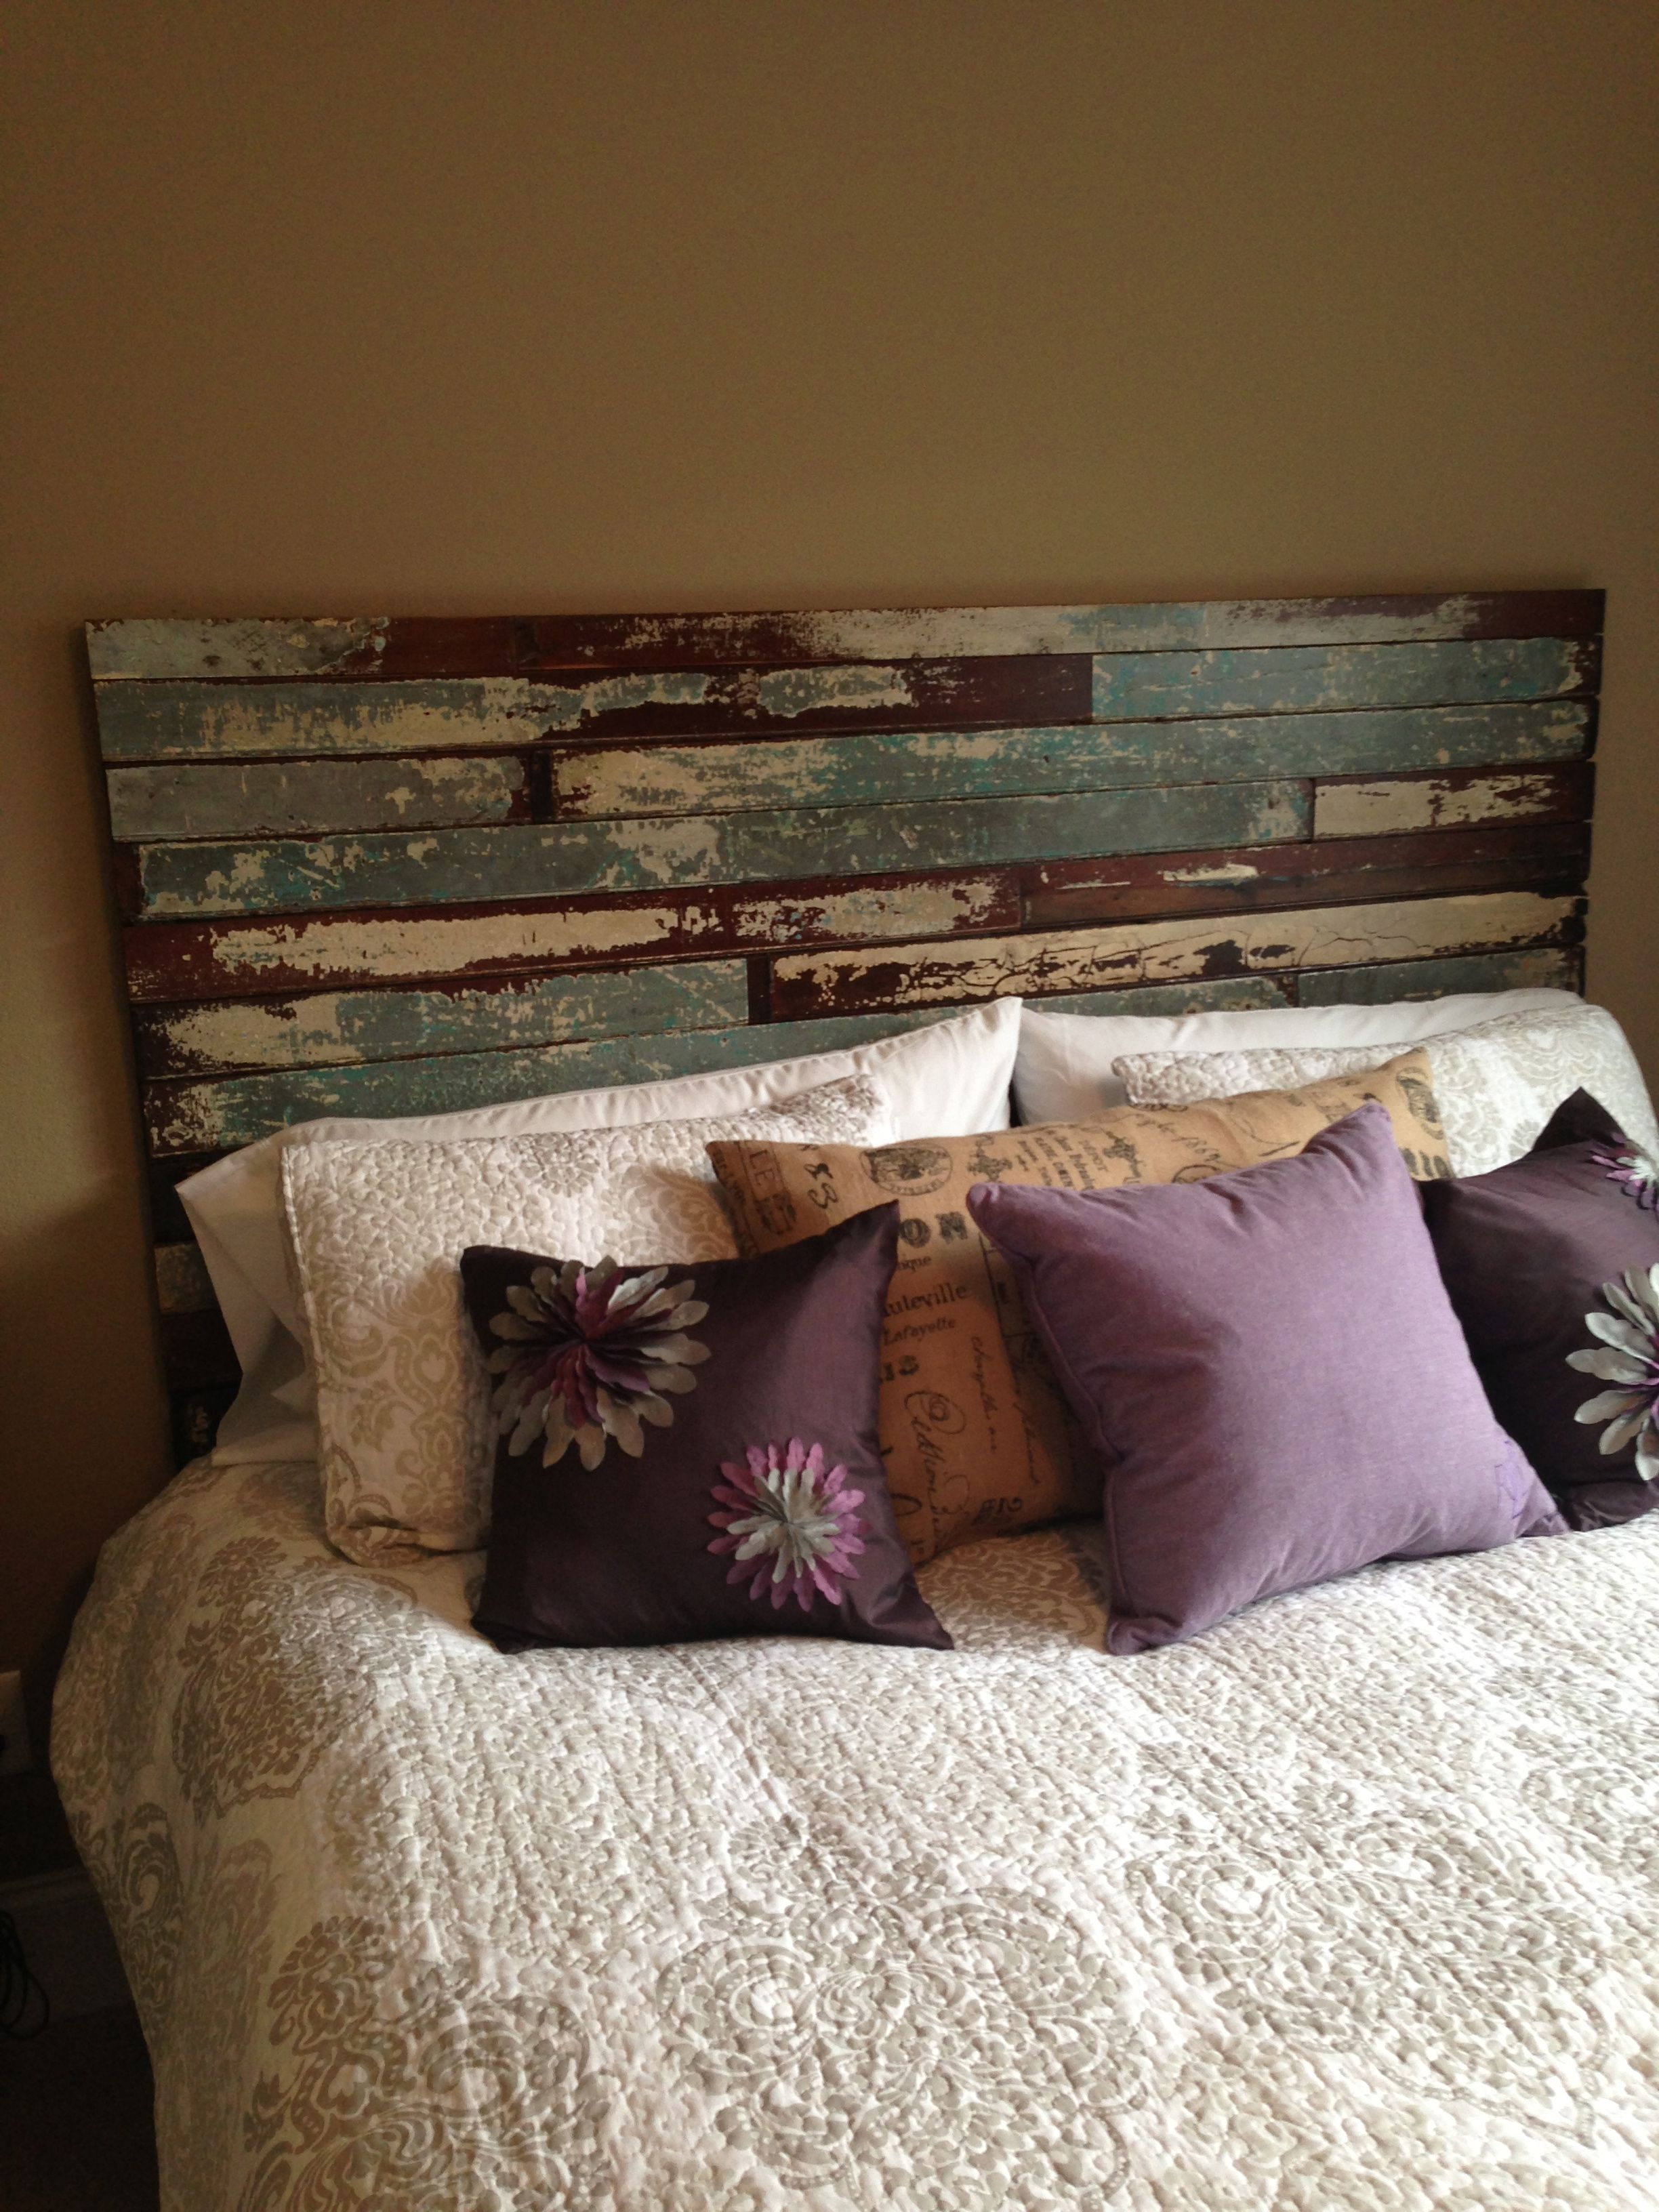 Wunderbar Bett Kopfteile · Reclaimed Wood Makes A Great King Size Headboard